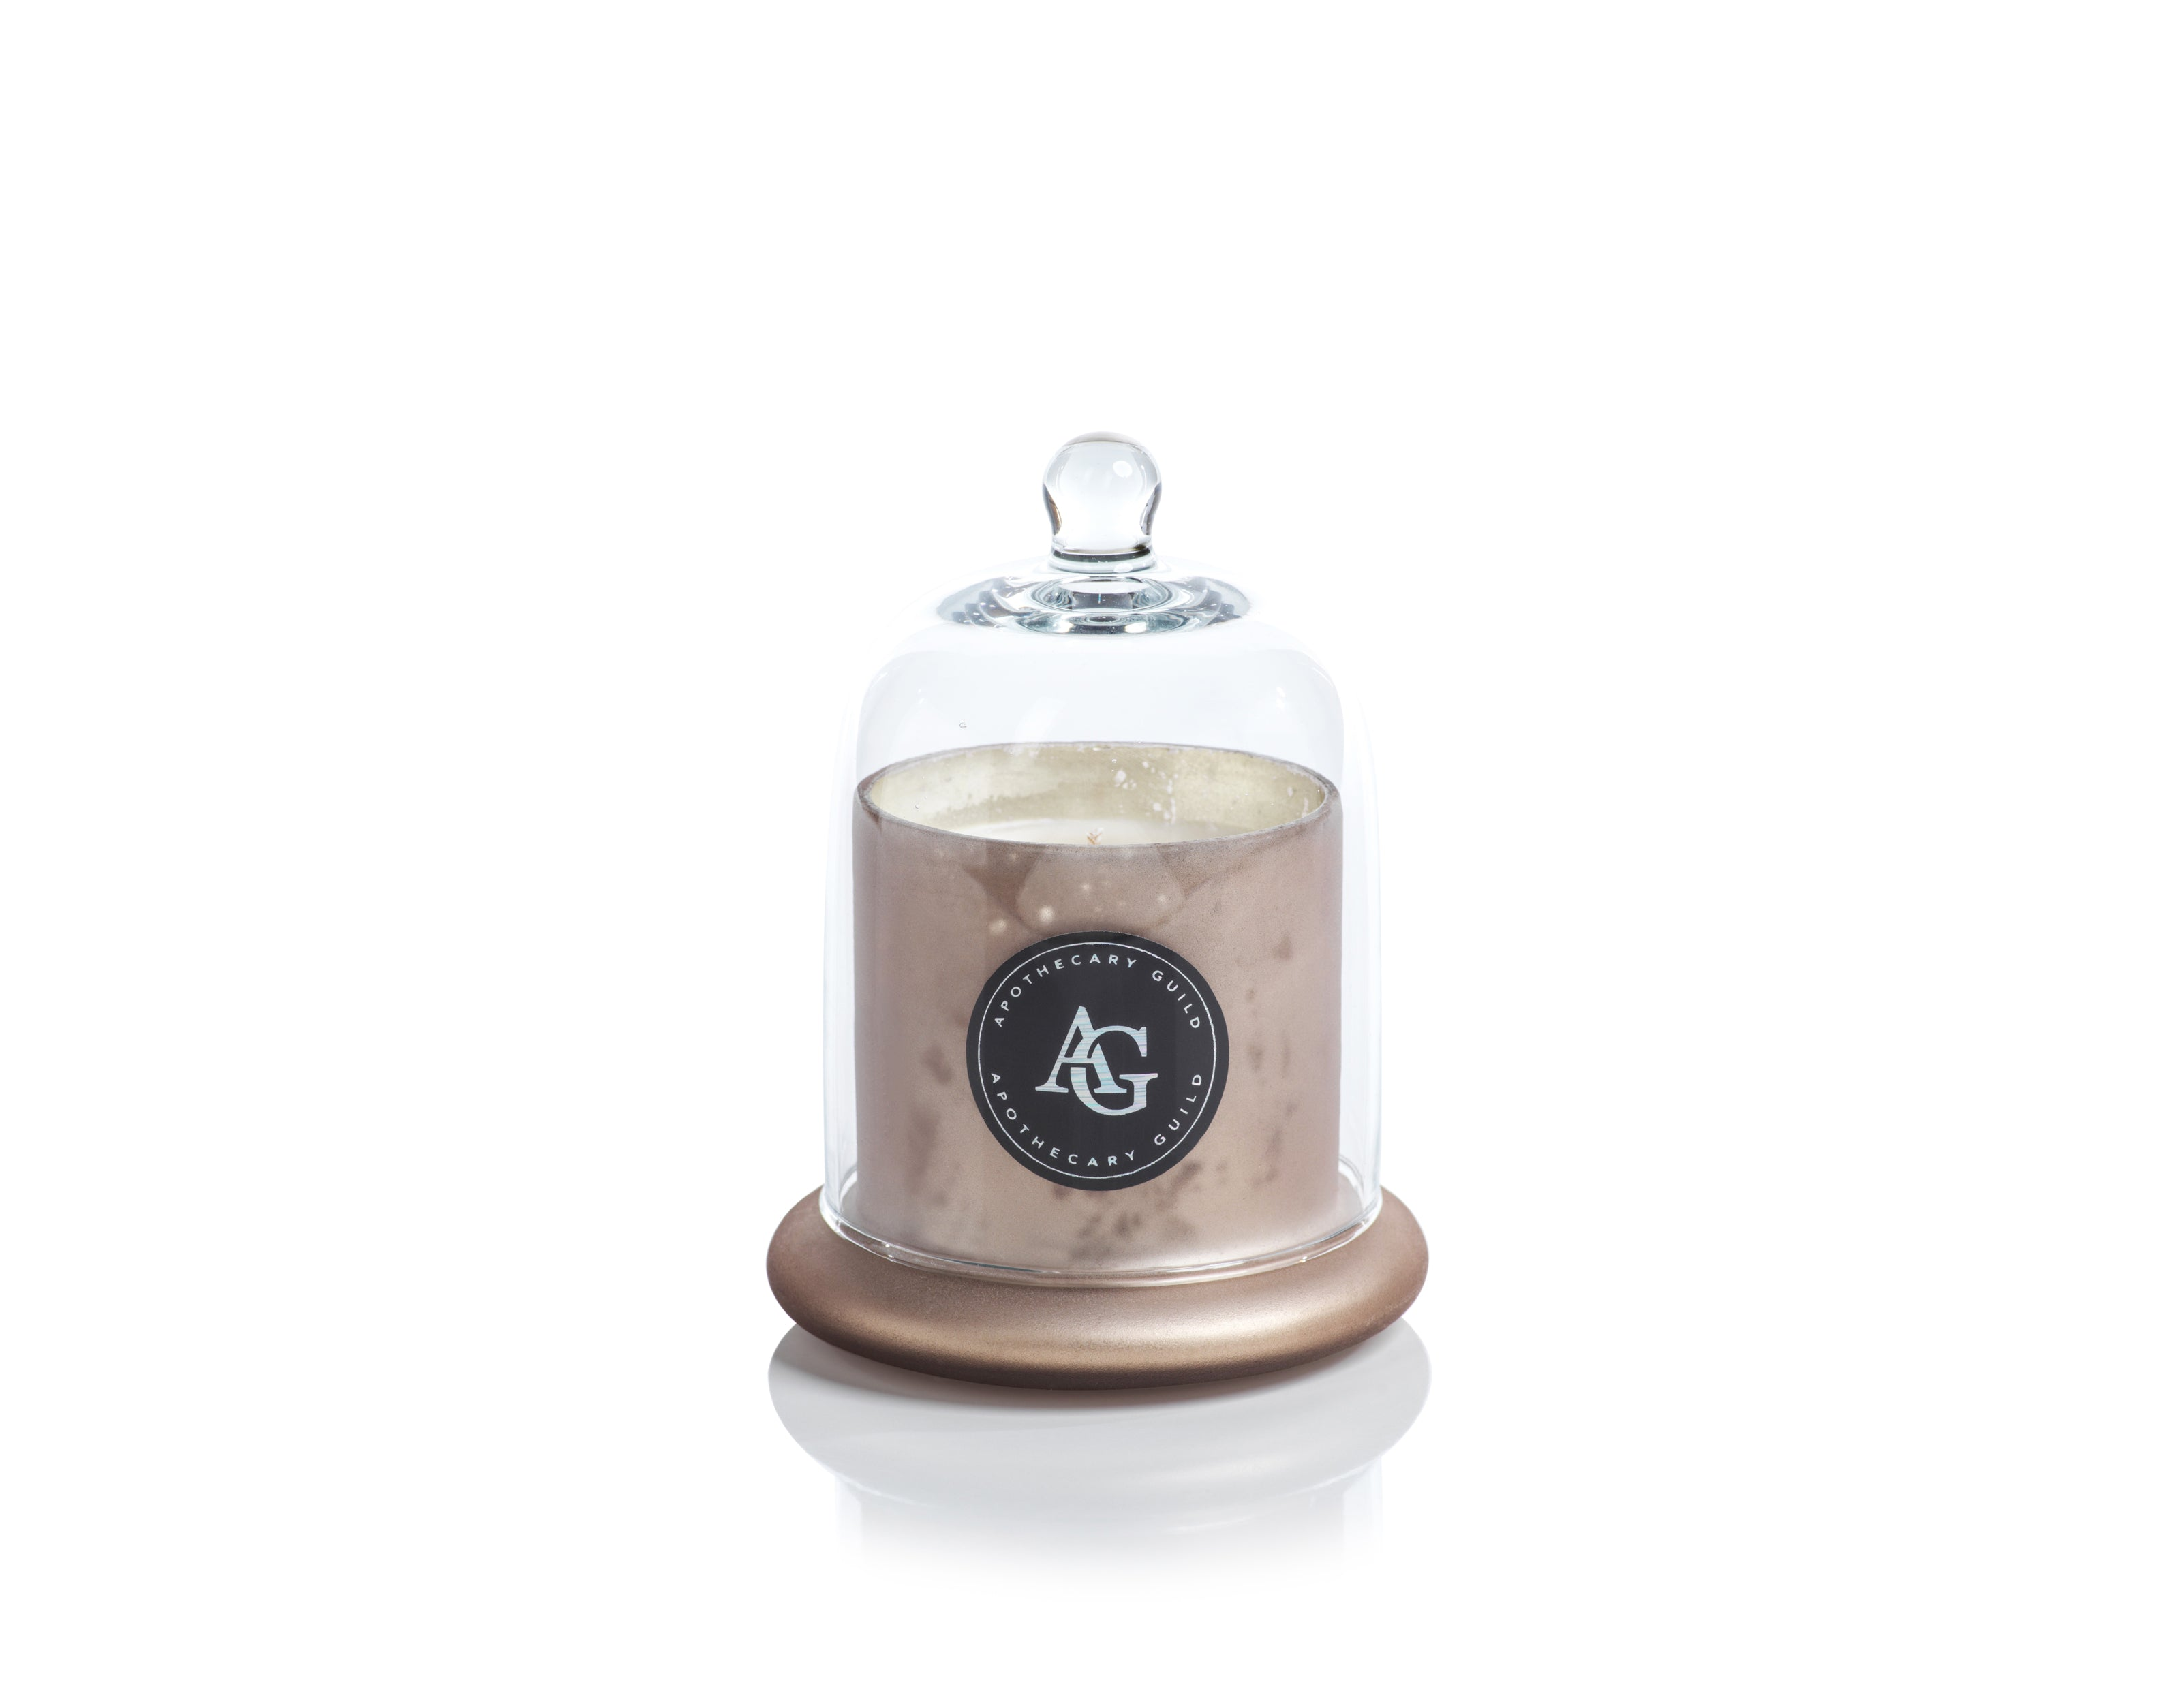 Apothecary Guild Frosted Candle Jar w/Dome - CARLYLE AVENUE